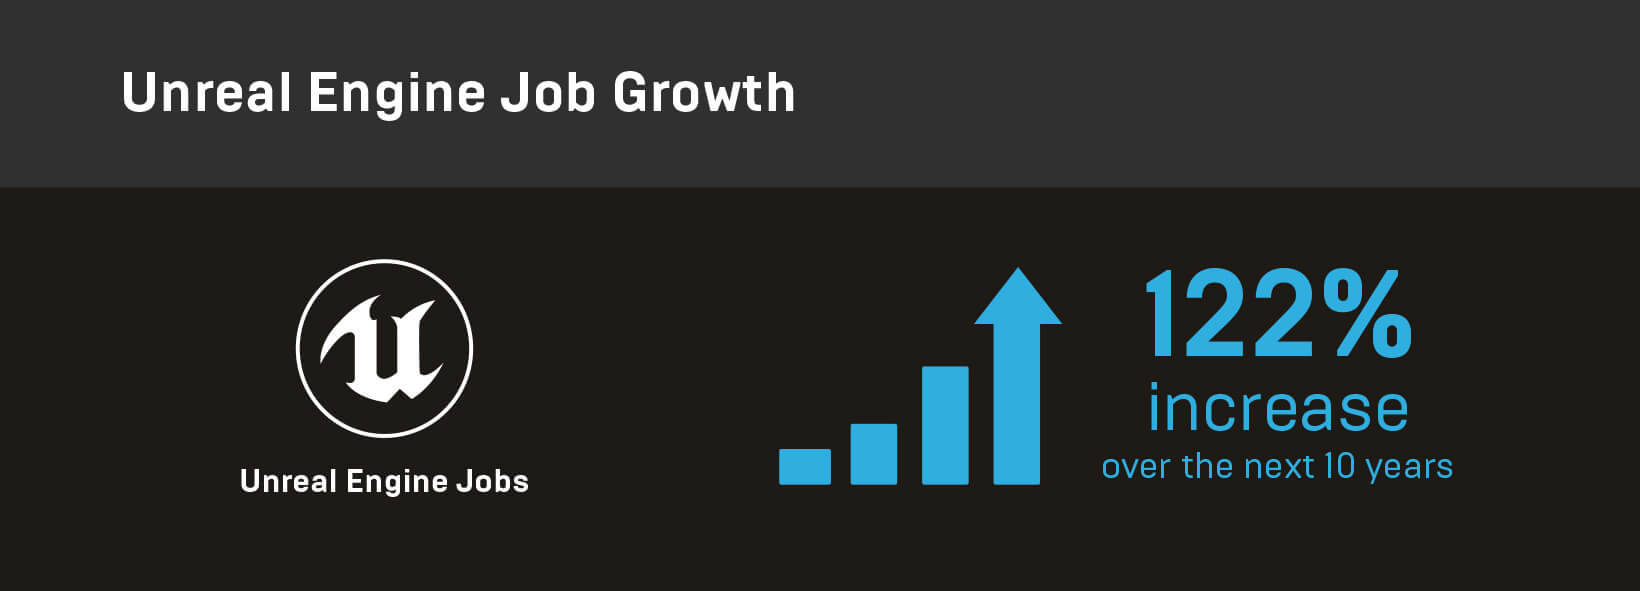 blog_body_stats_jobgrowth.jpg